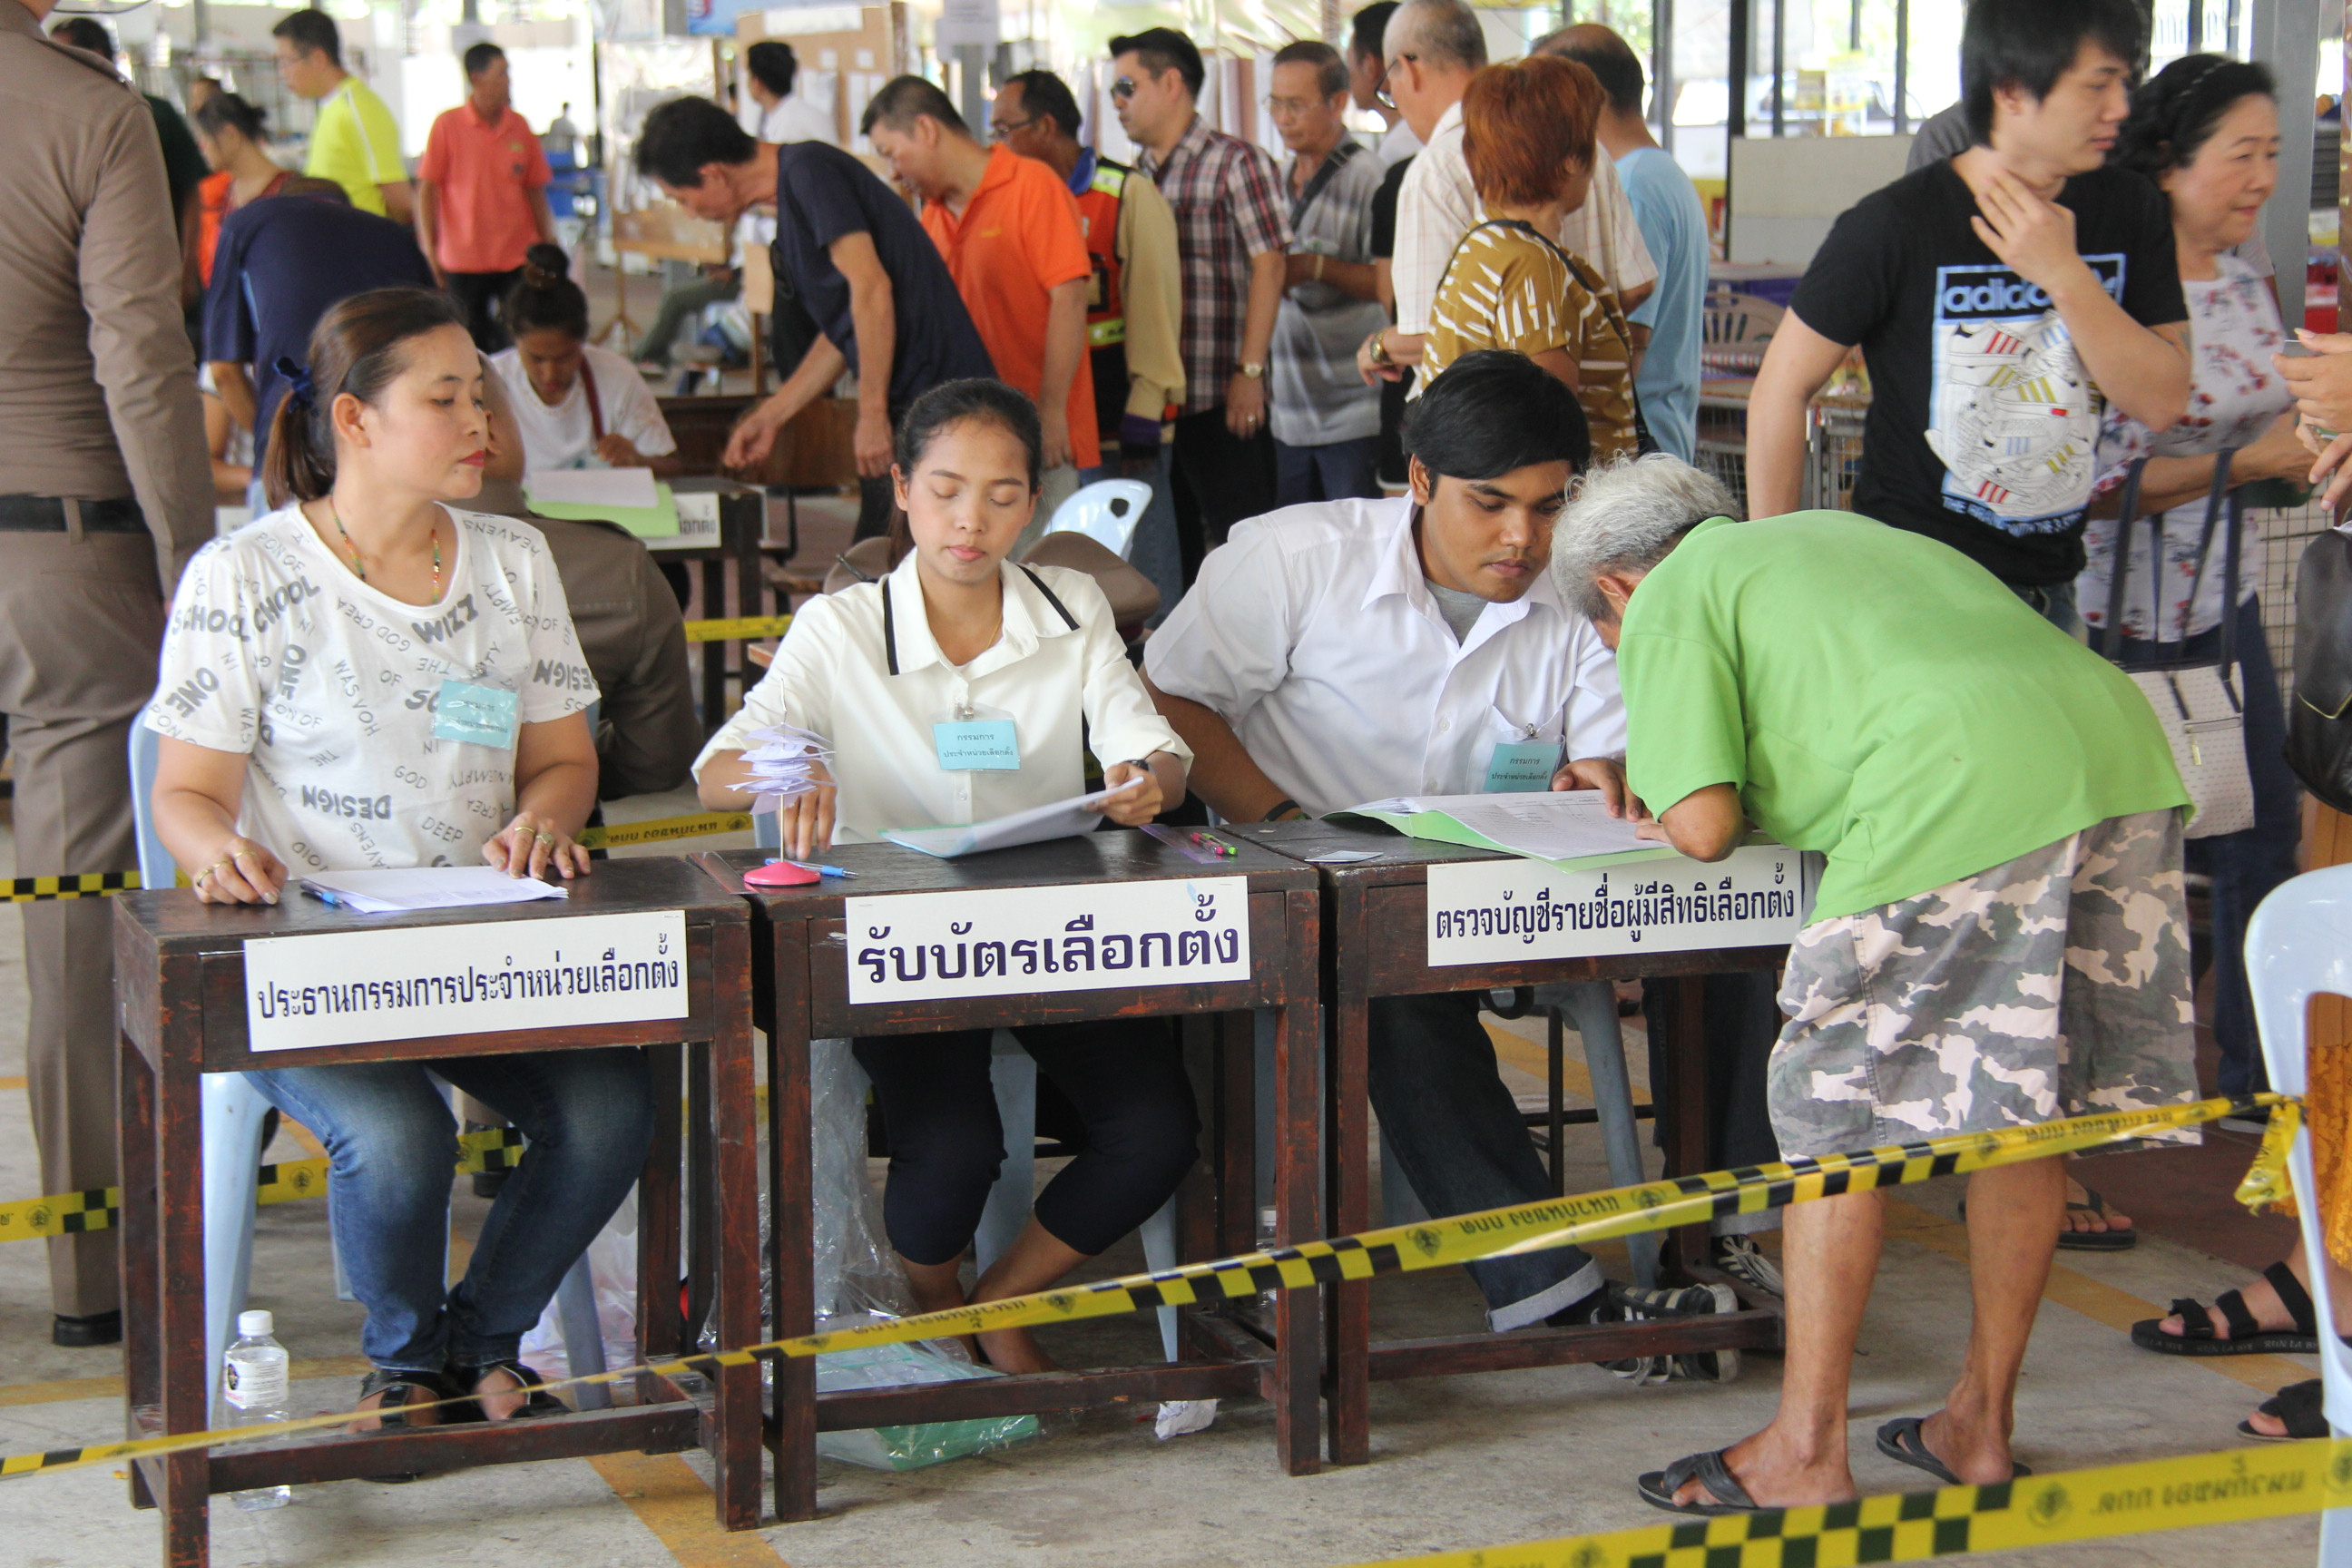 Polls open for Thailand's election